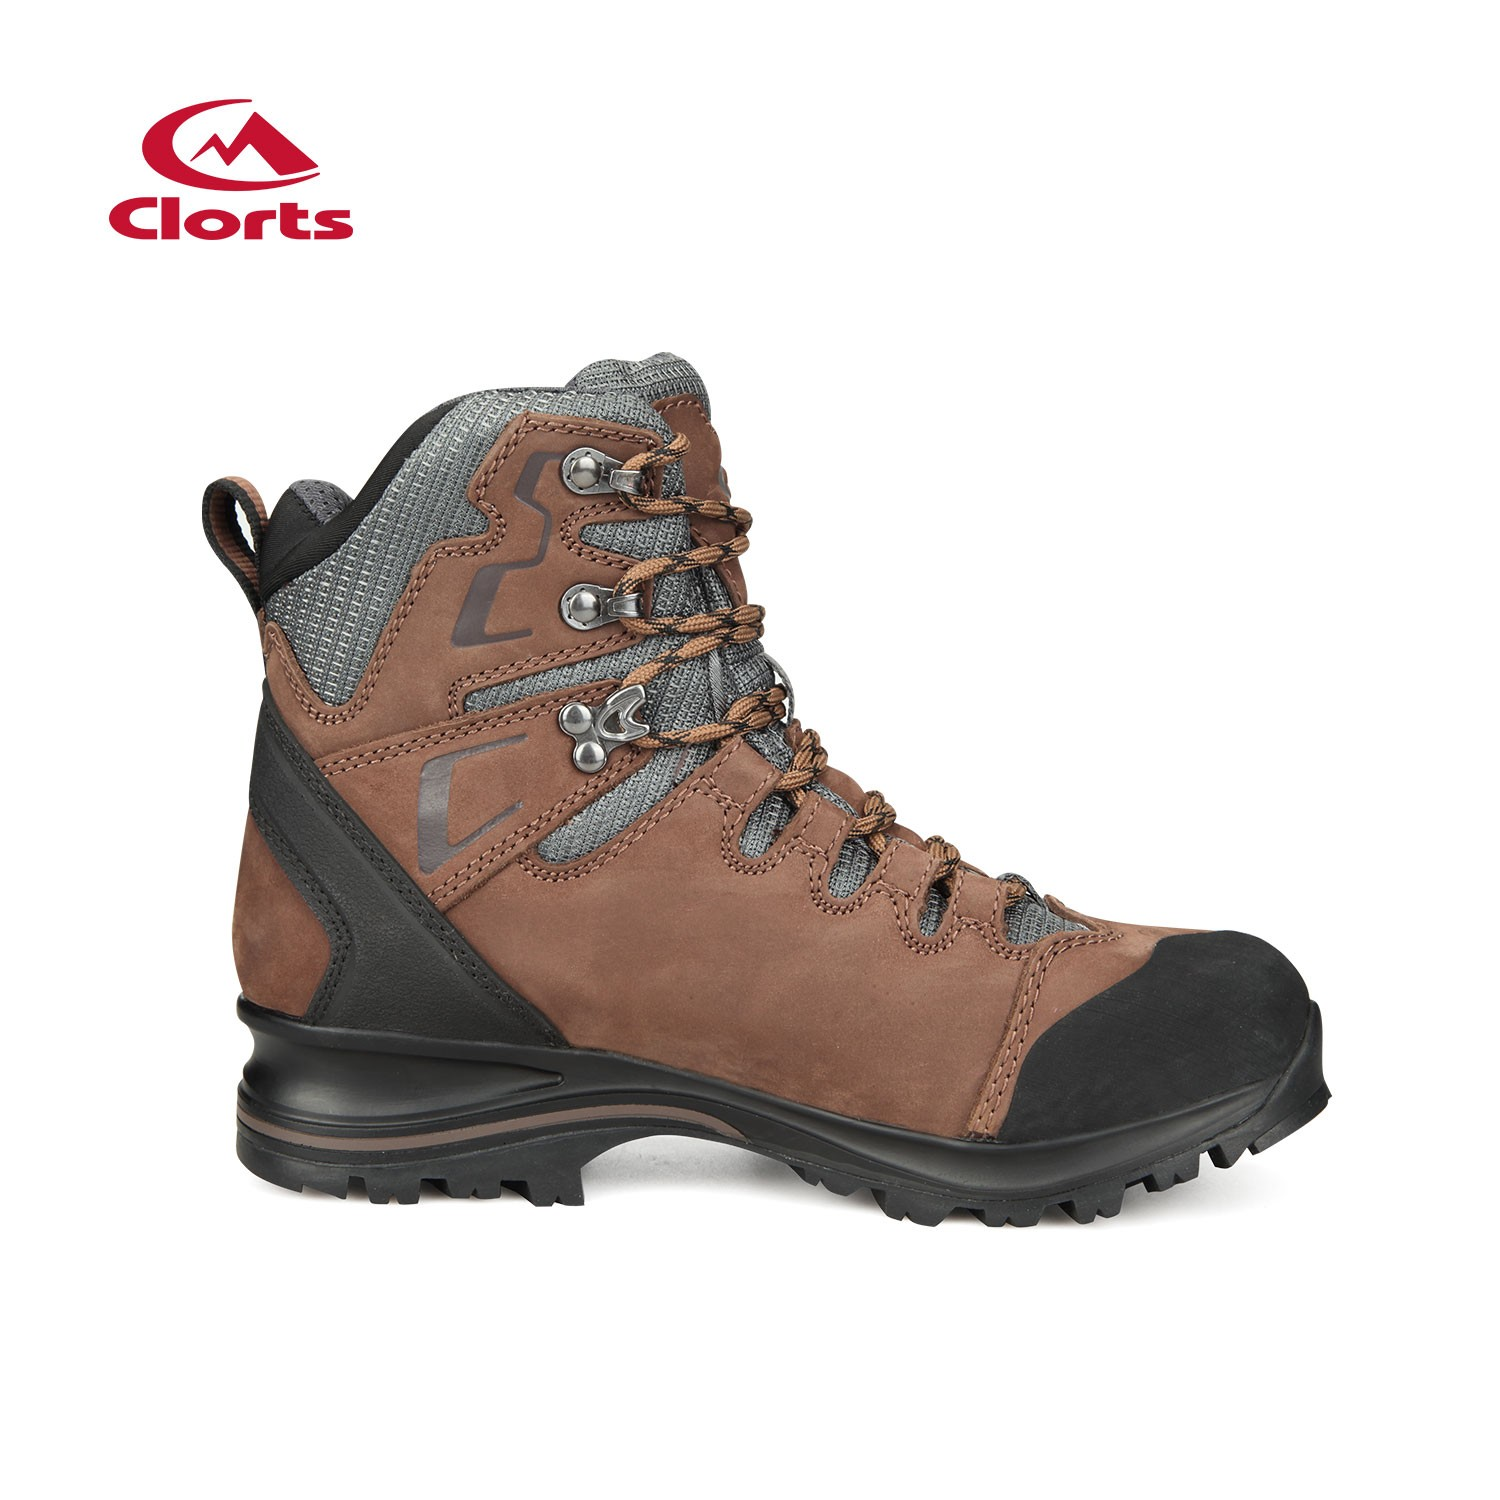 Adults Leather Hiking Shoes Manufacturers, Adults Leather Hiking Shoes Factory, Supply Adults Leather Hiking Shoes